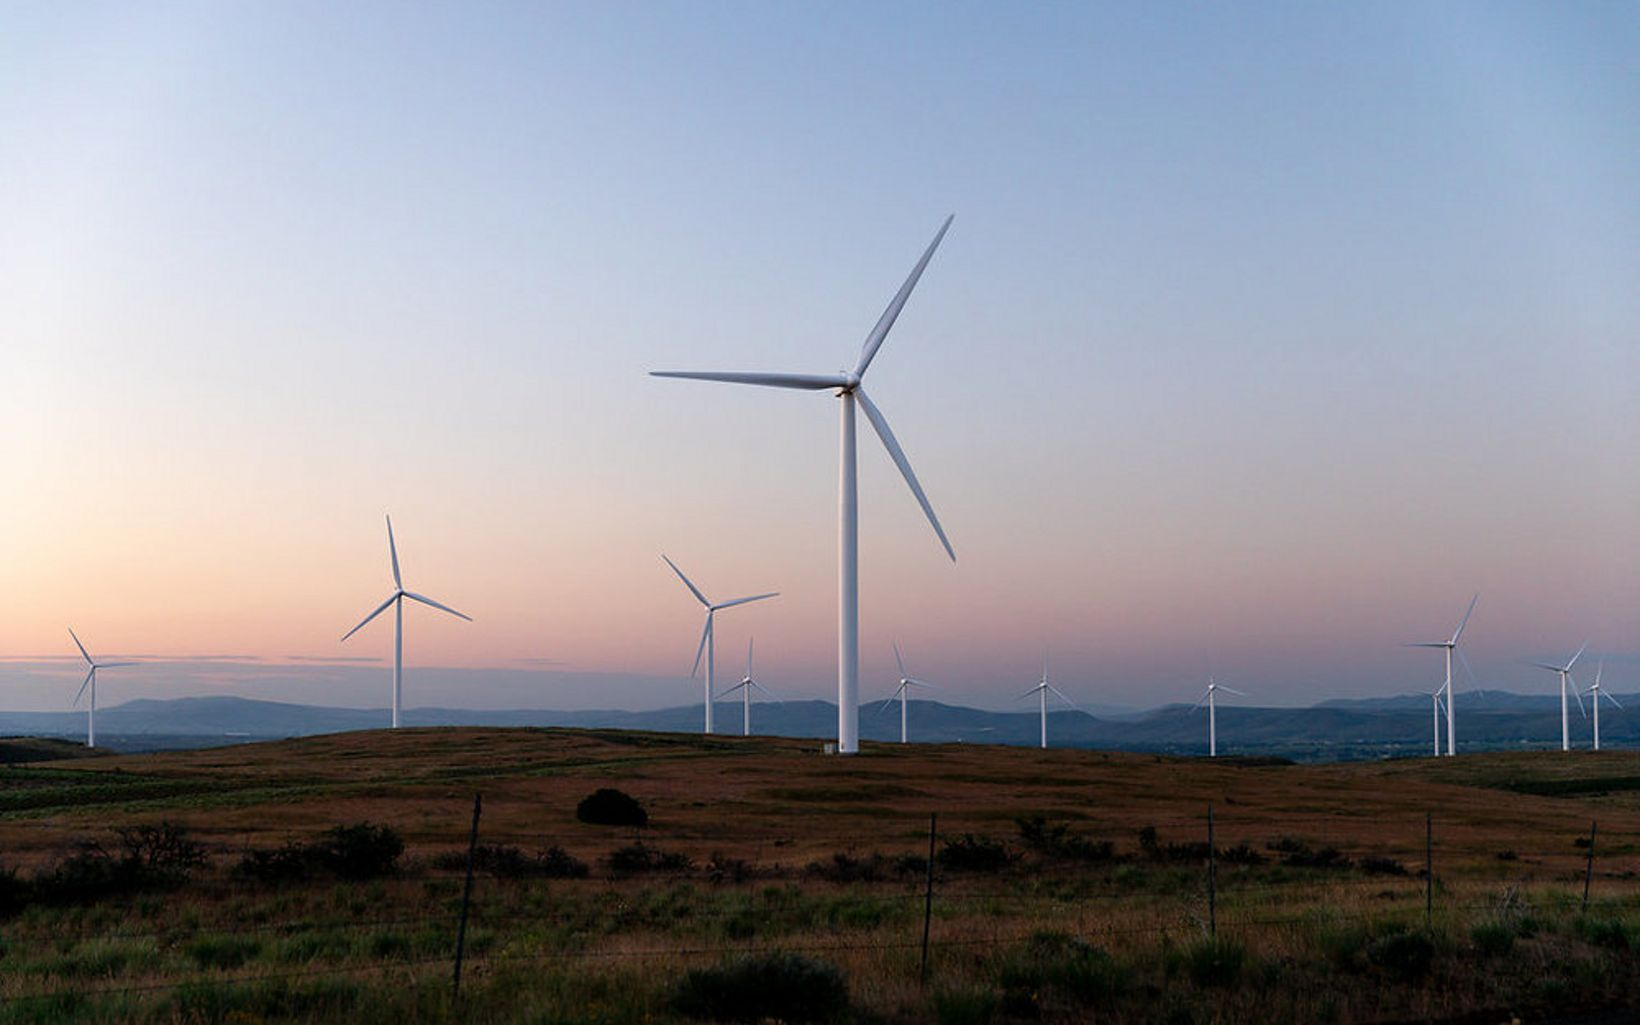 in Kittitas Valley near Ellensburg. Operated by EDP Renewables, the wind farm is located on private and public land, and it powers 26,000 homes with renewable energy.